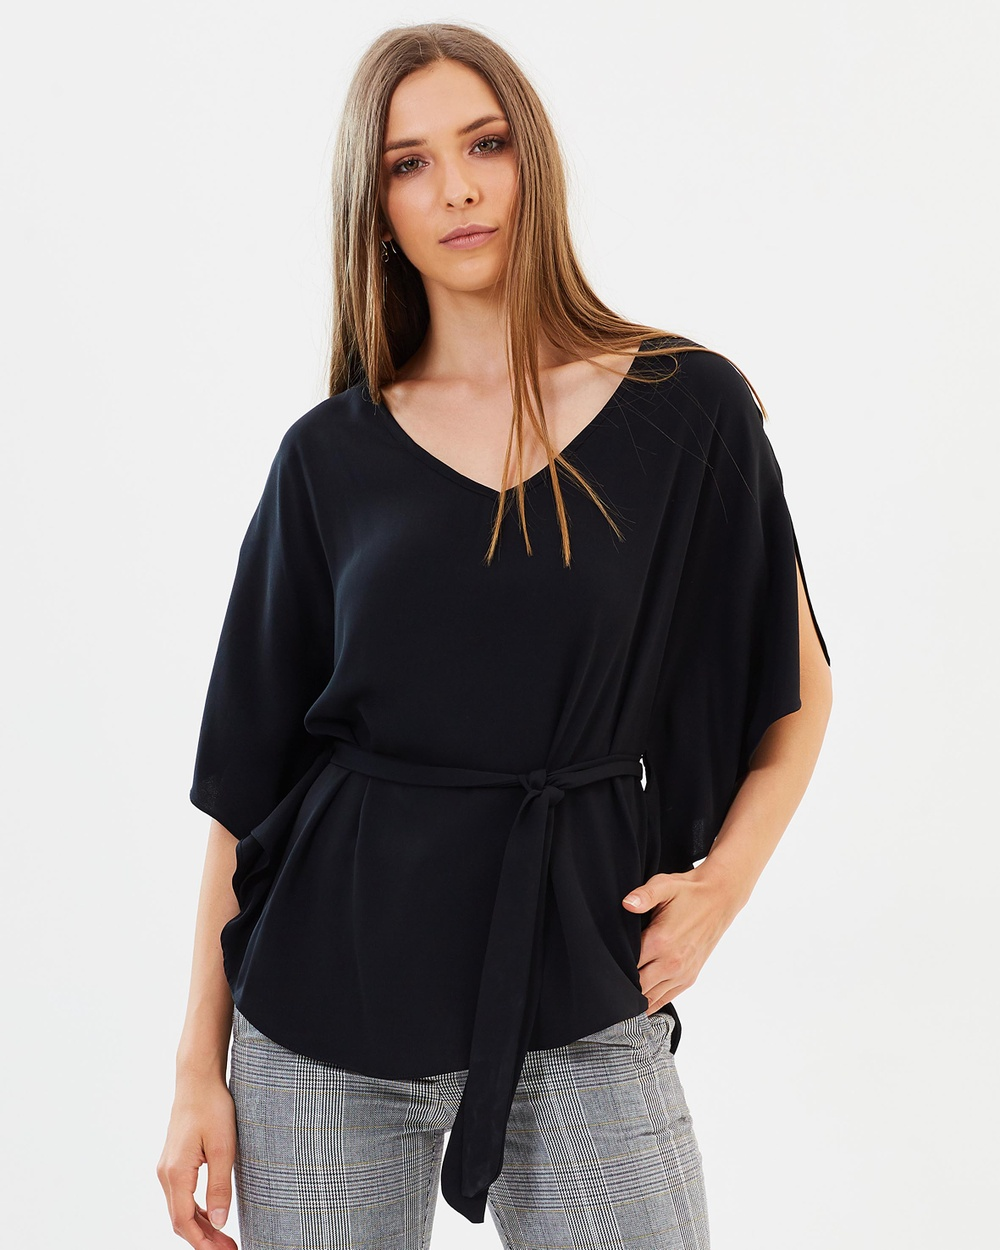 Dorothy Perkins Cape Top Tops Black Cape Top